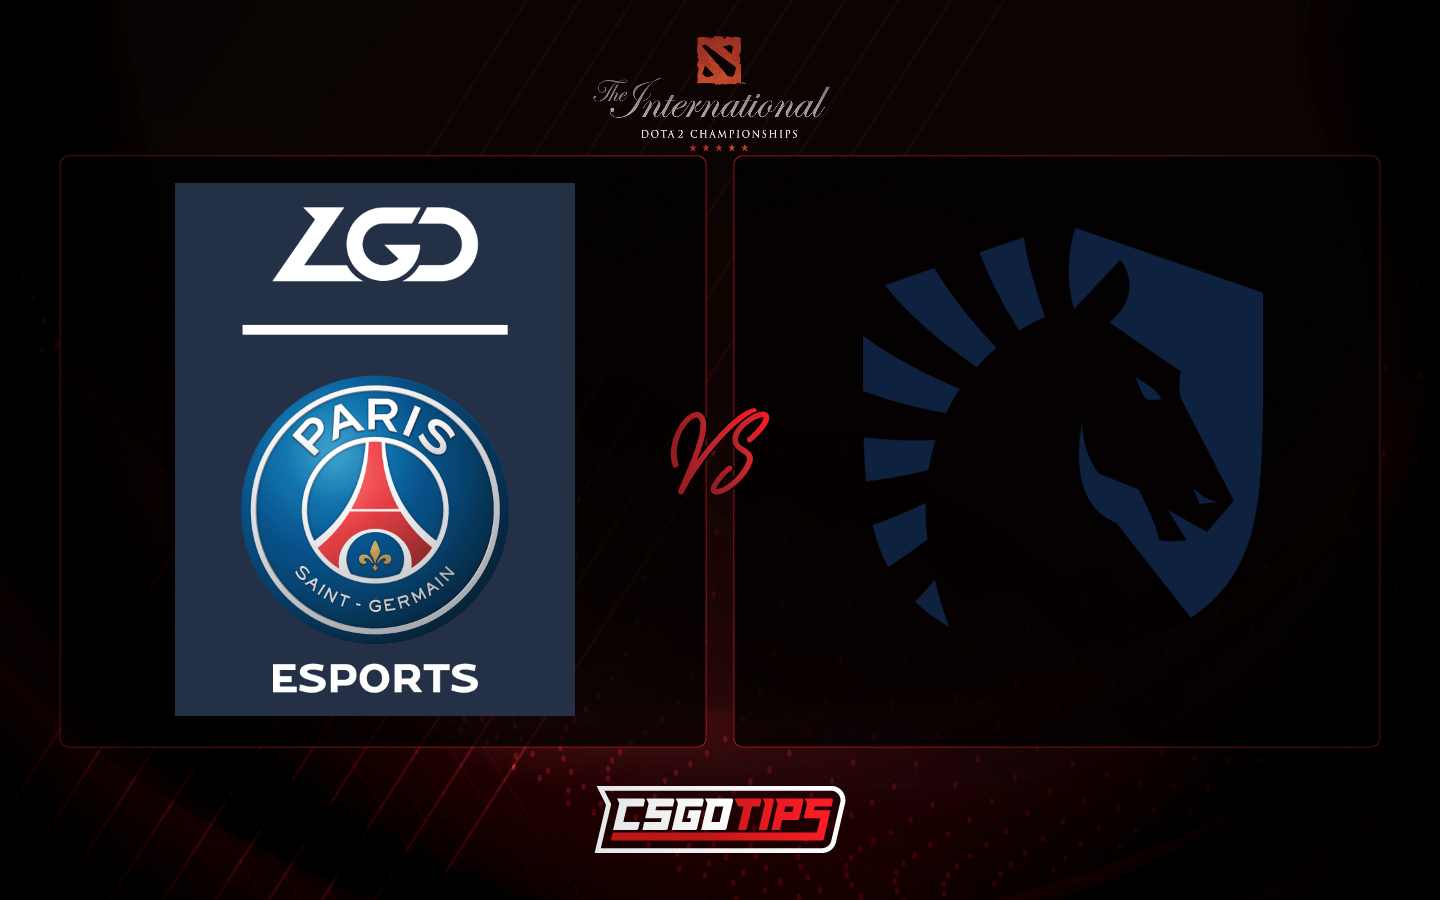 PSG LGD vs Liquid Prediction – Who Will Advance to the Grand Final